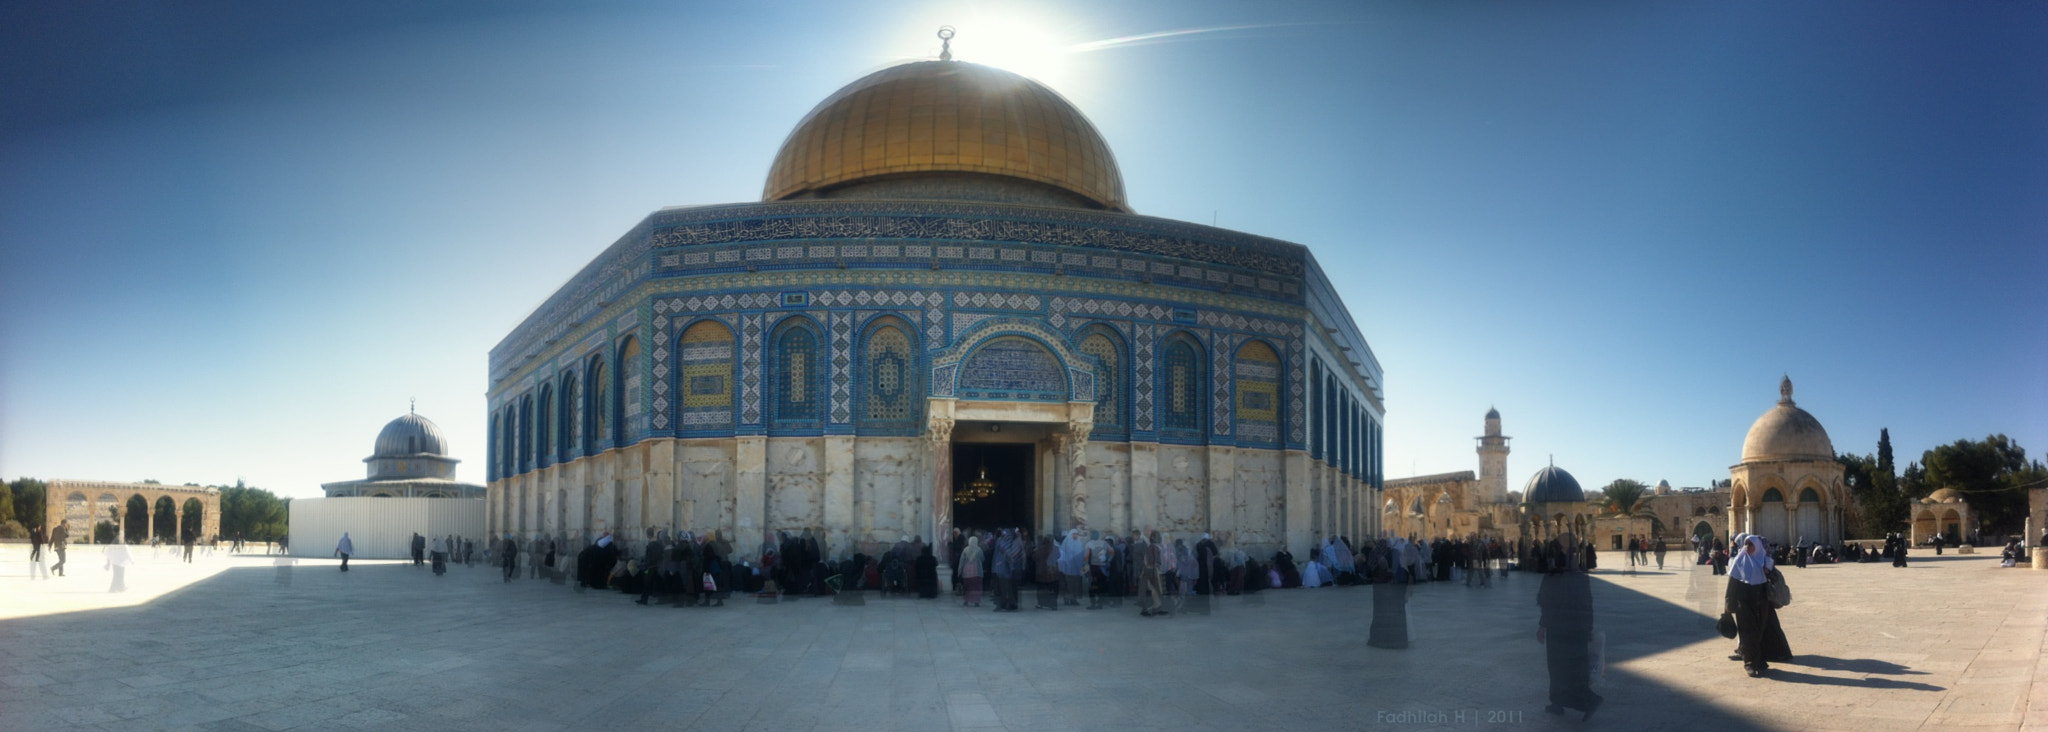 Photograph Dome of Rock by Fadhilah H on 500px